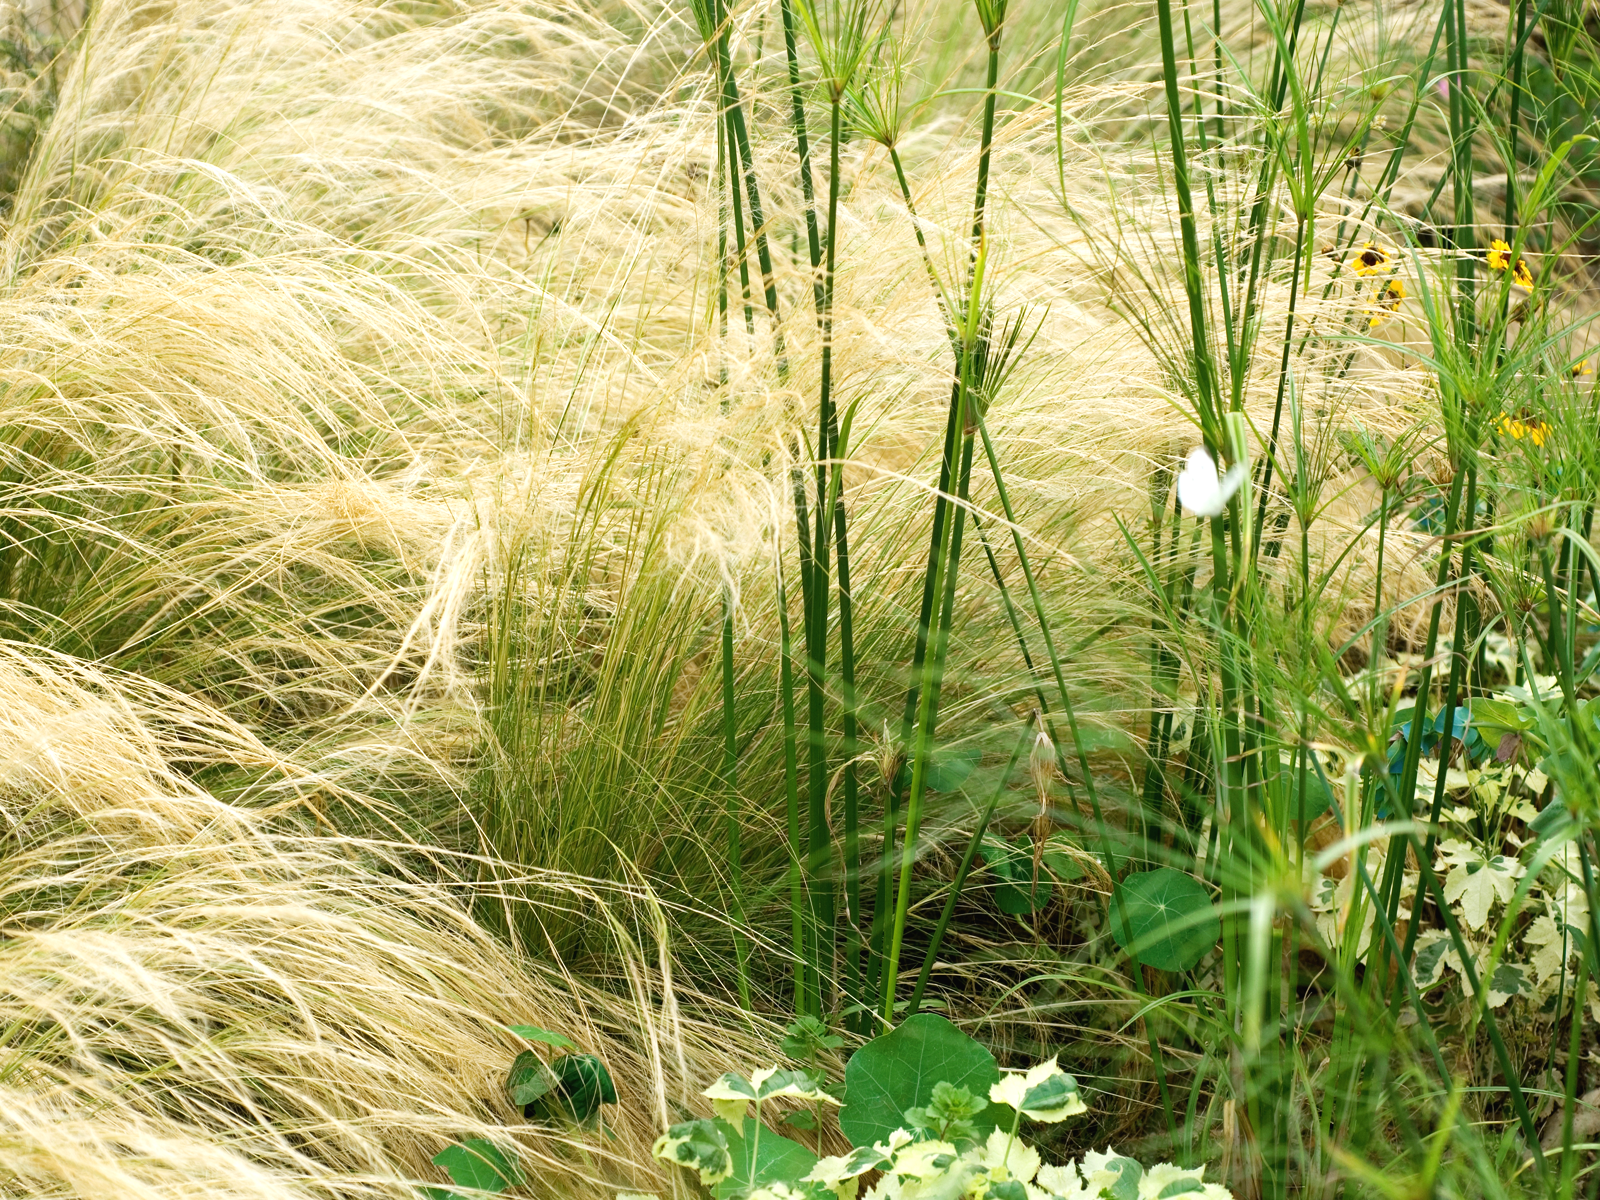 Wild grasses wallpaper all institutions are prone to for Like long grasses